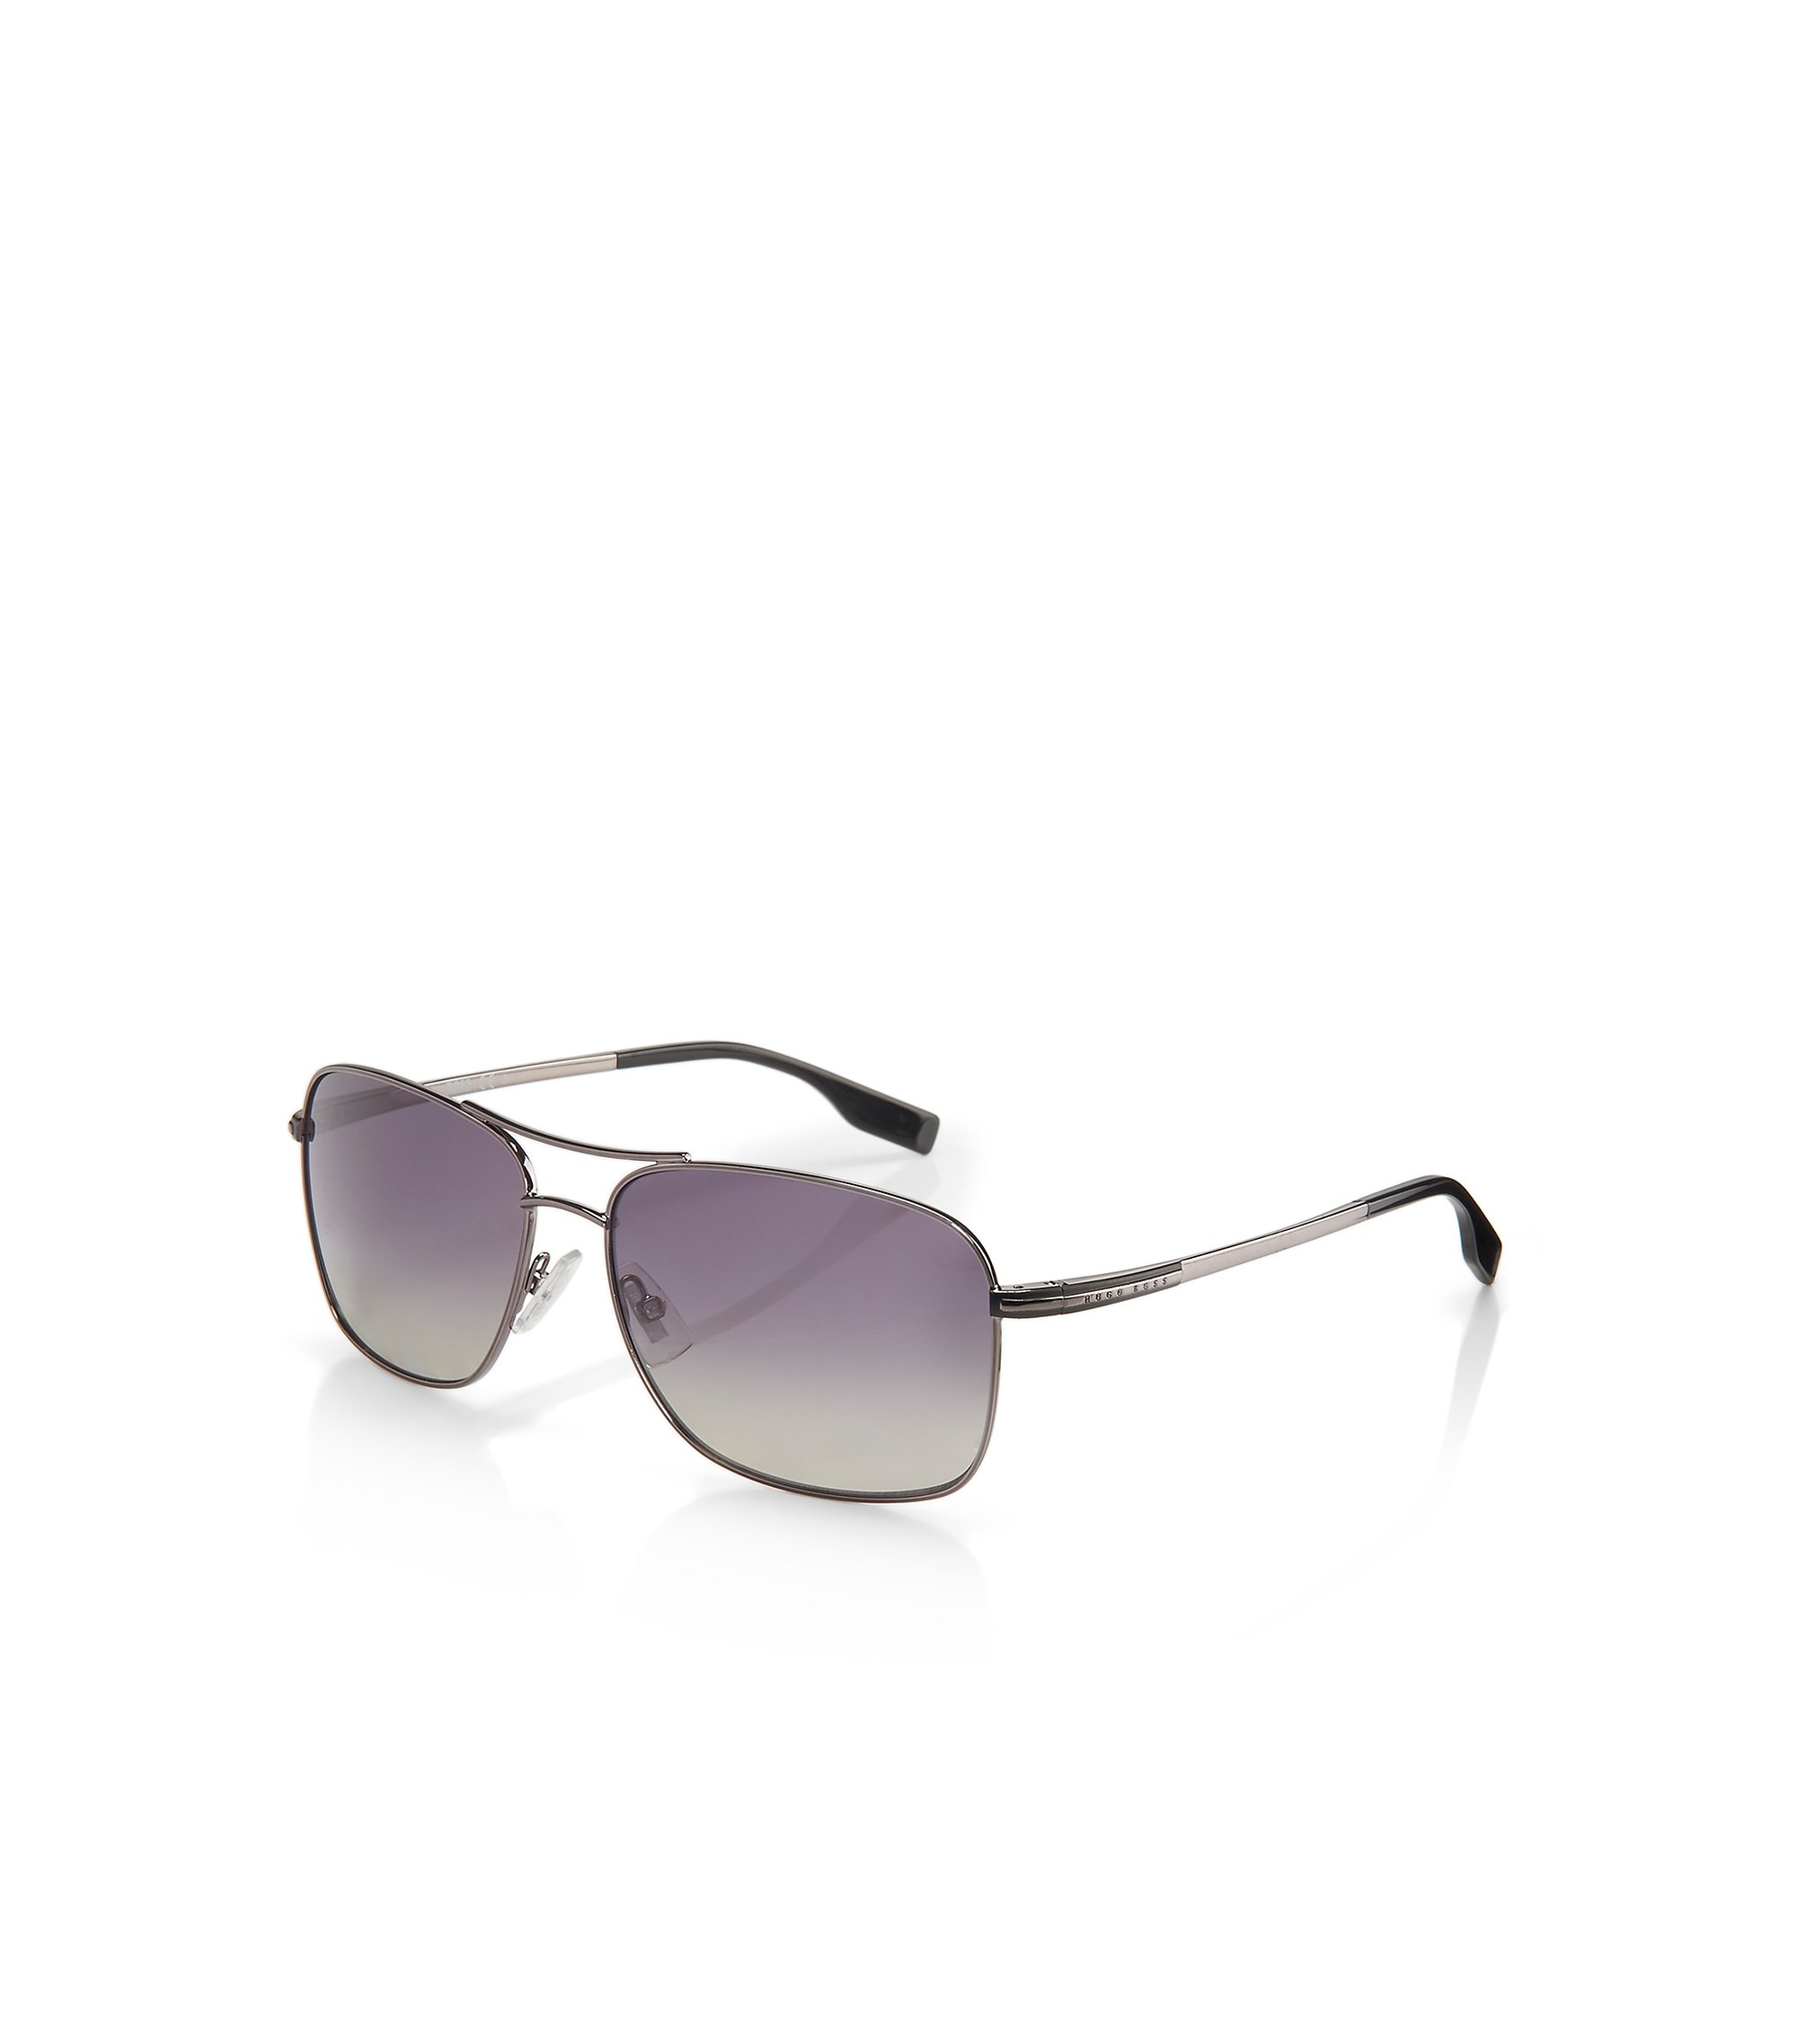 Oversized Wood Detail Sunglasses | BOSS 0581, Assorted-Pre-Pack